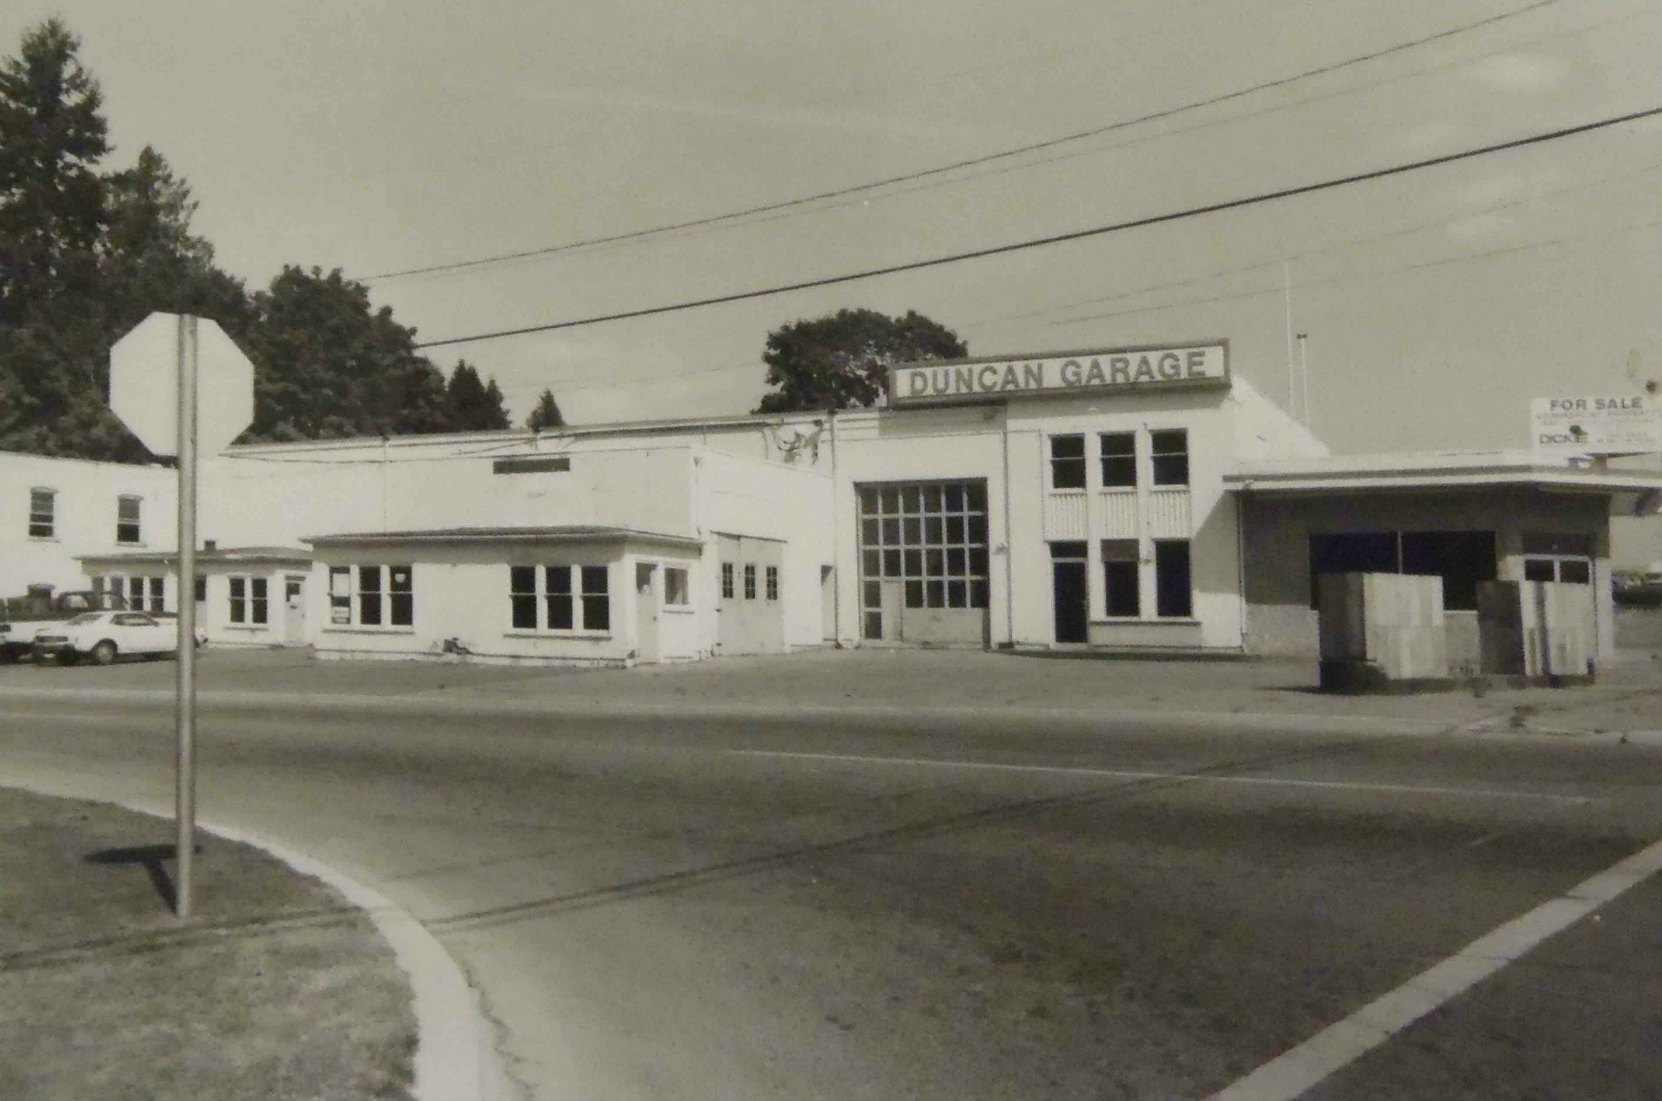 Duncan Garage, circa 1983. This photo was taken shortly after Duncan Garage Ltd. closed this location.